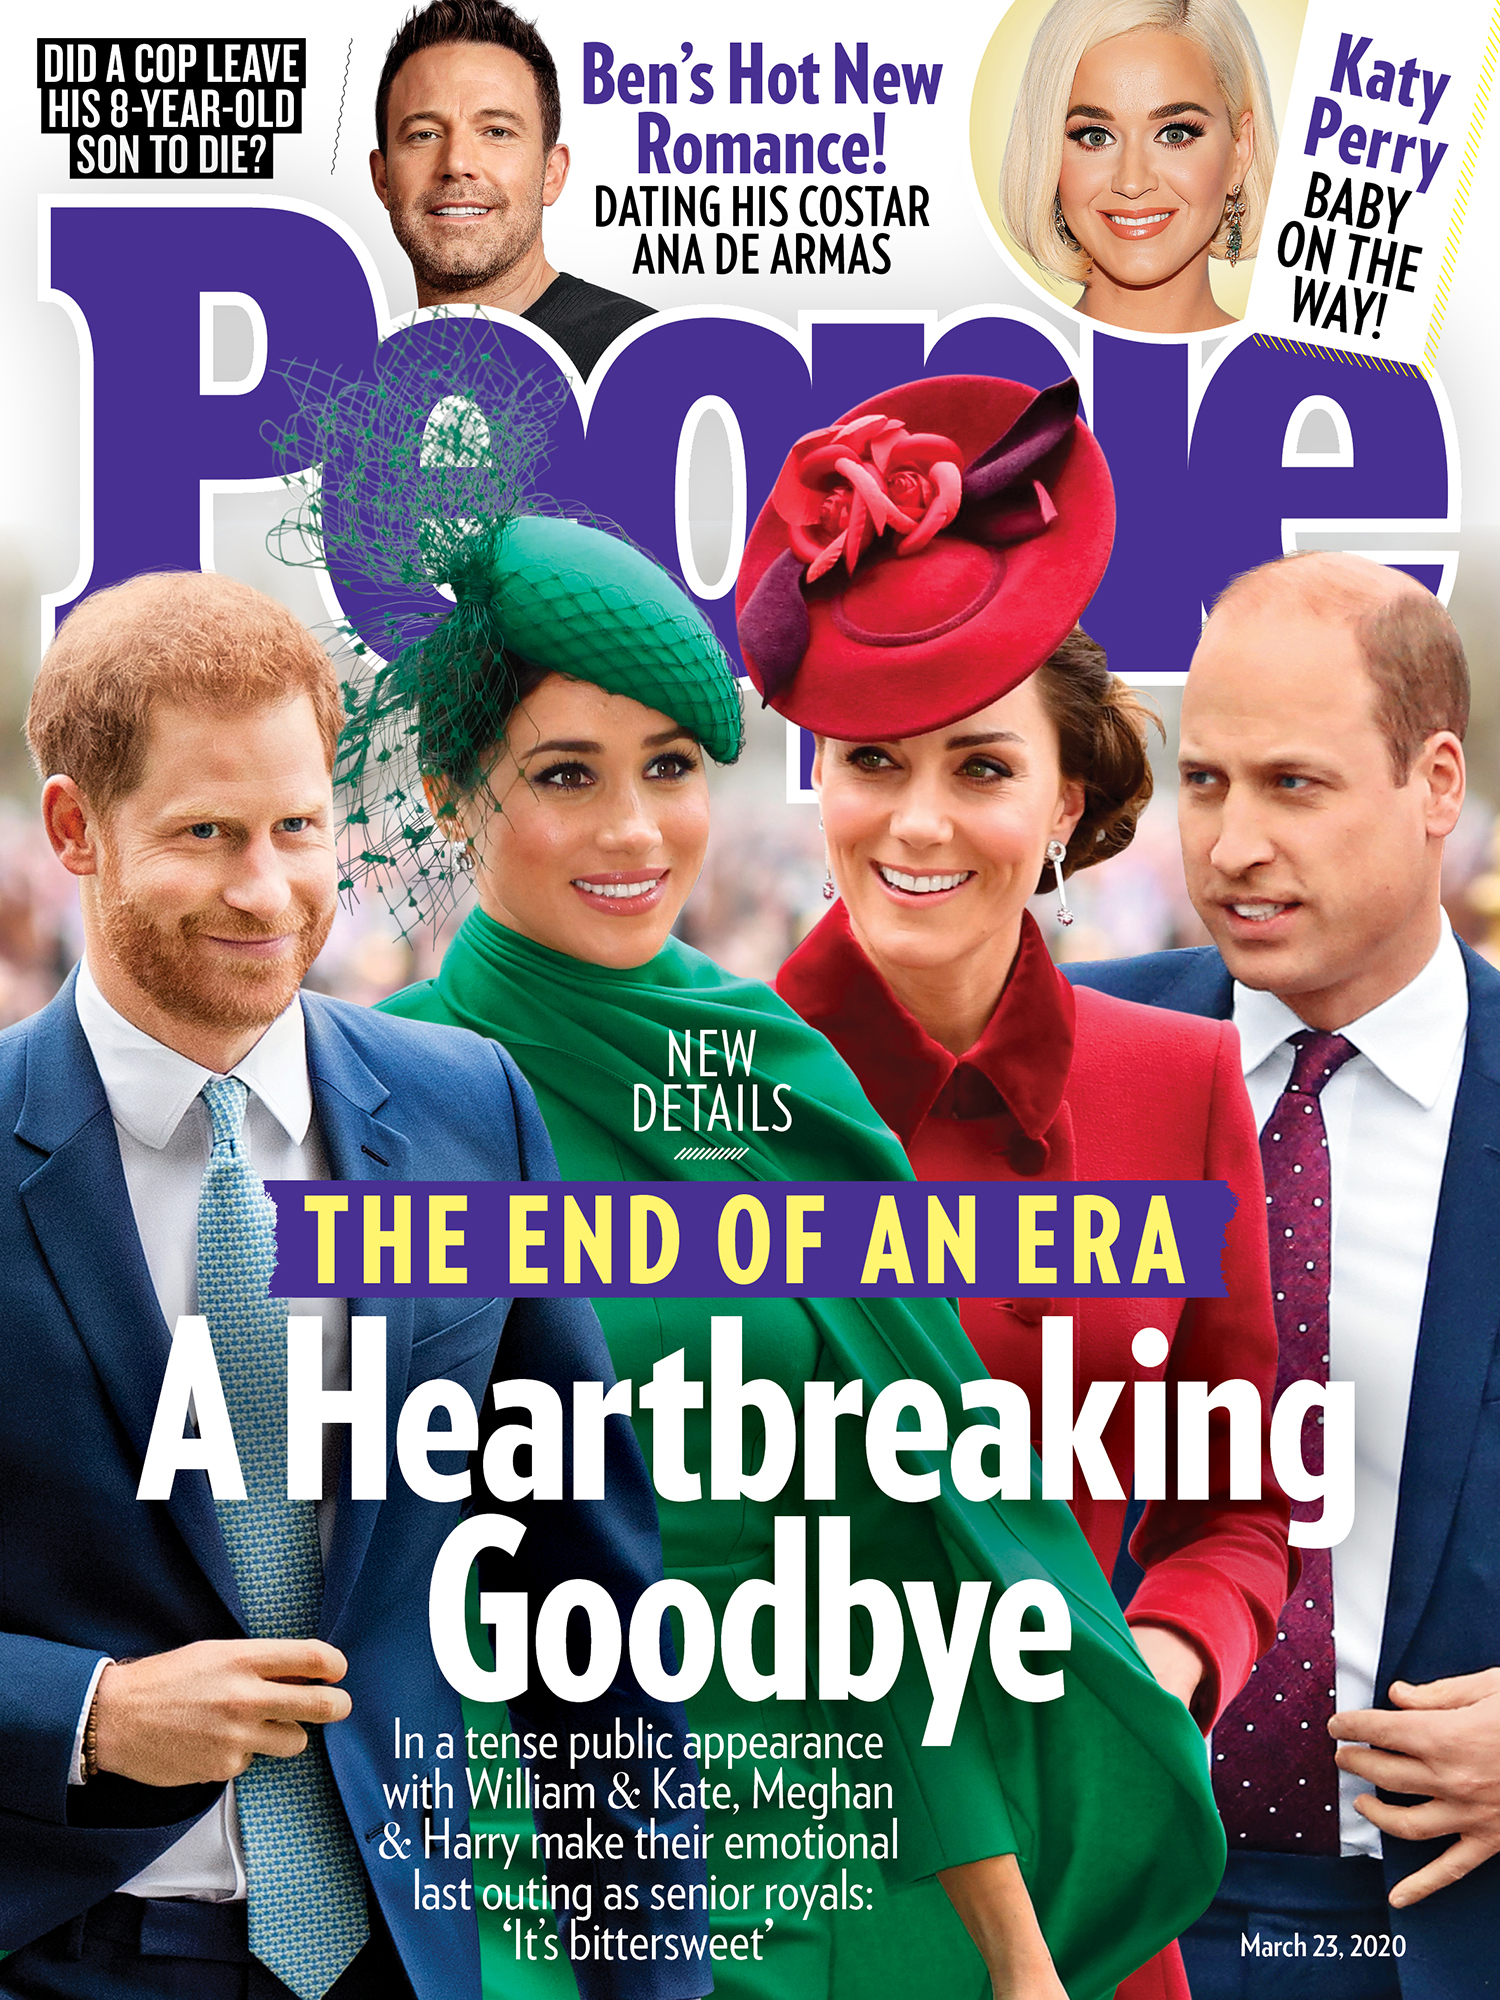 3/23/2020 cover of people magazine featuring the royal family